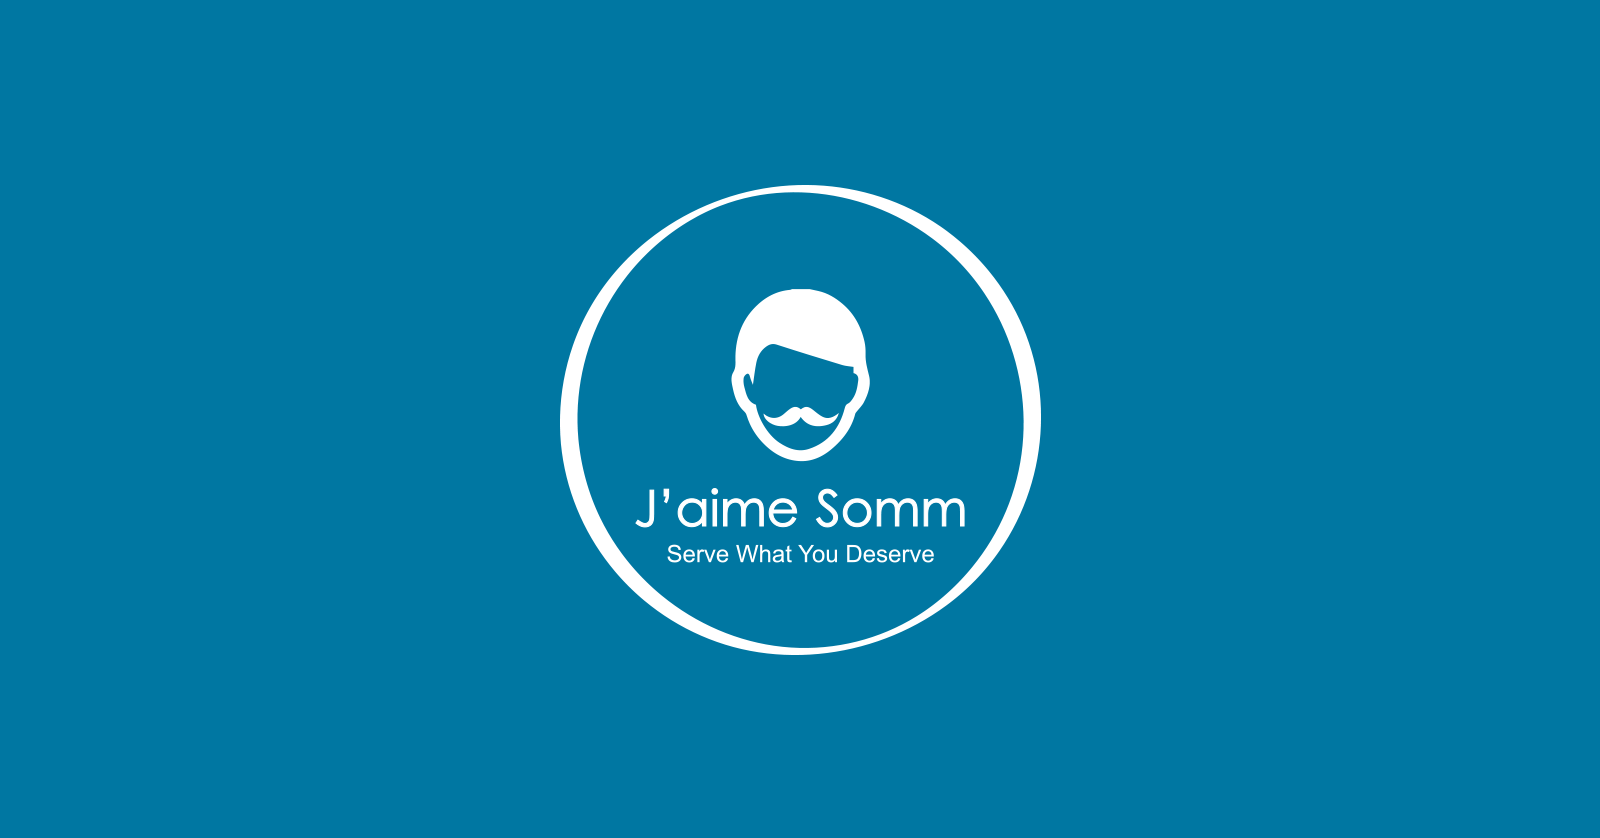 About J'aime Somm